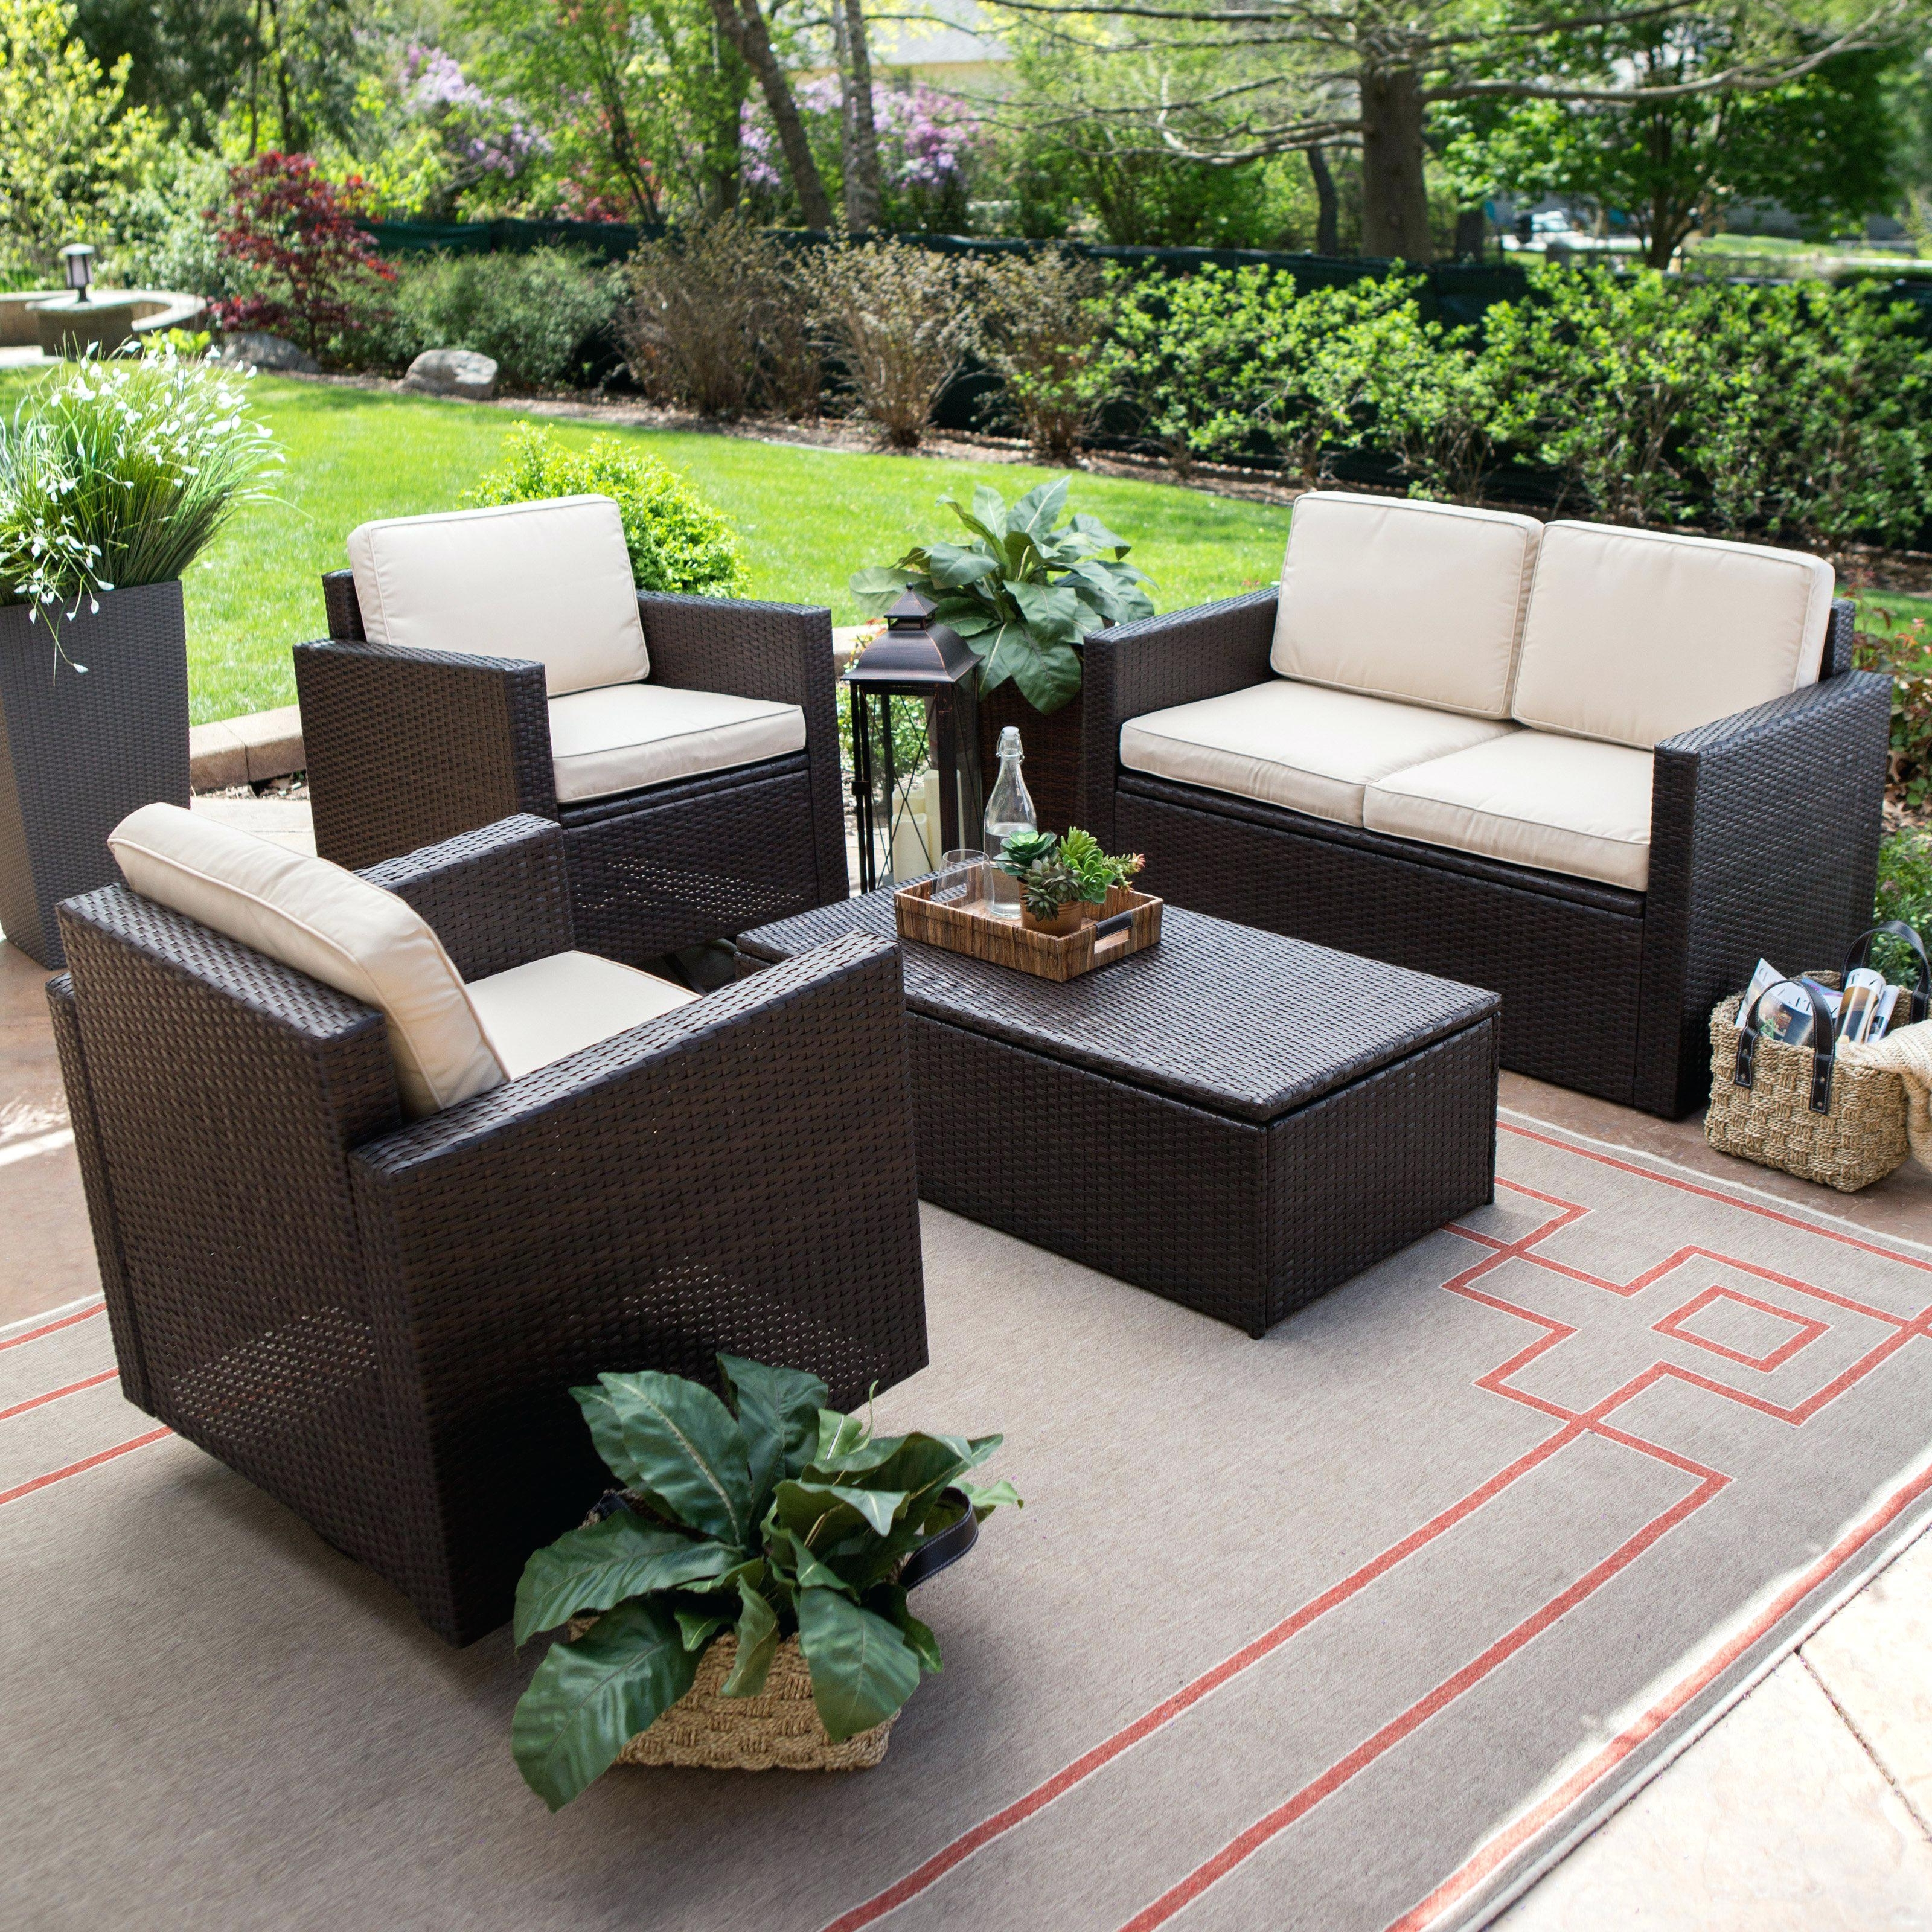 Patio Conversation Sets Coral Coast Wicker 4 Piece Conversation Set Pertaining To Well Liked Patio Conversation Sets (View 15 of 20)